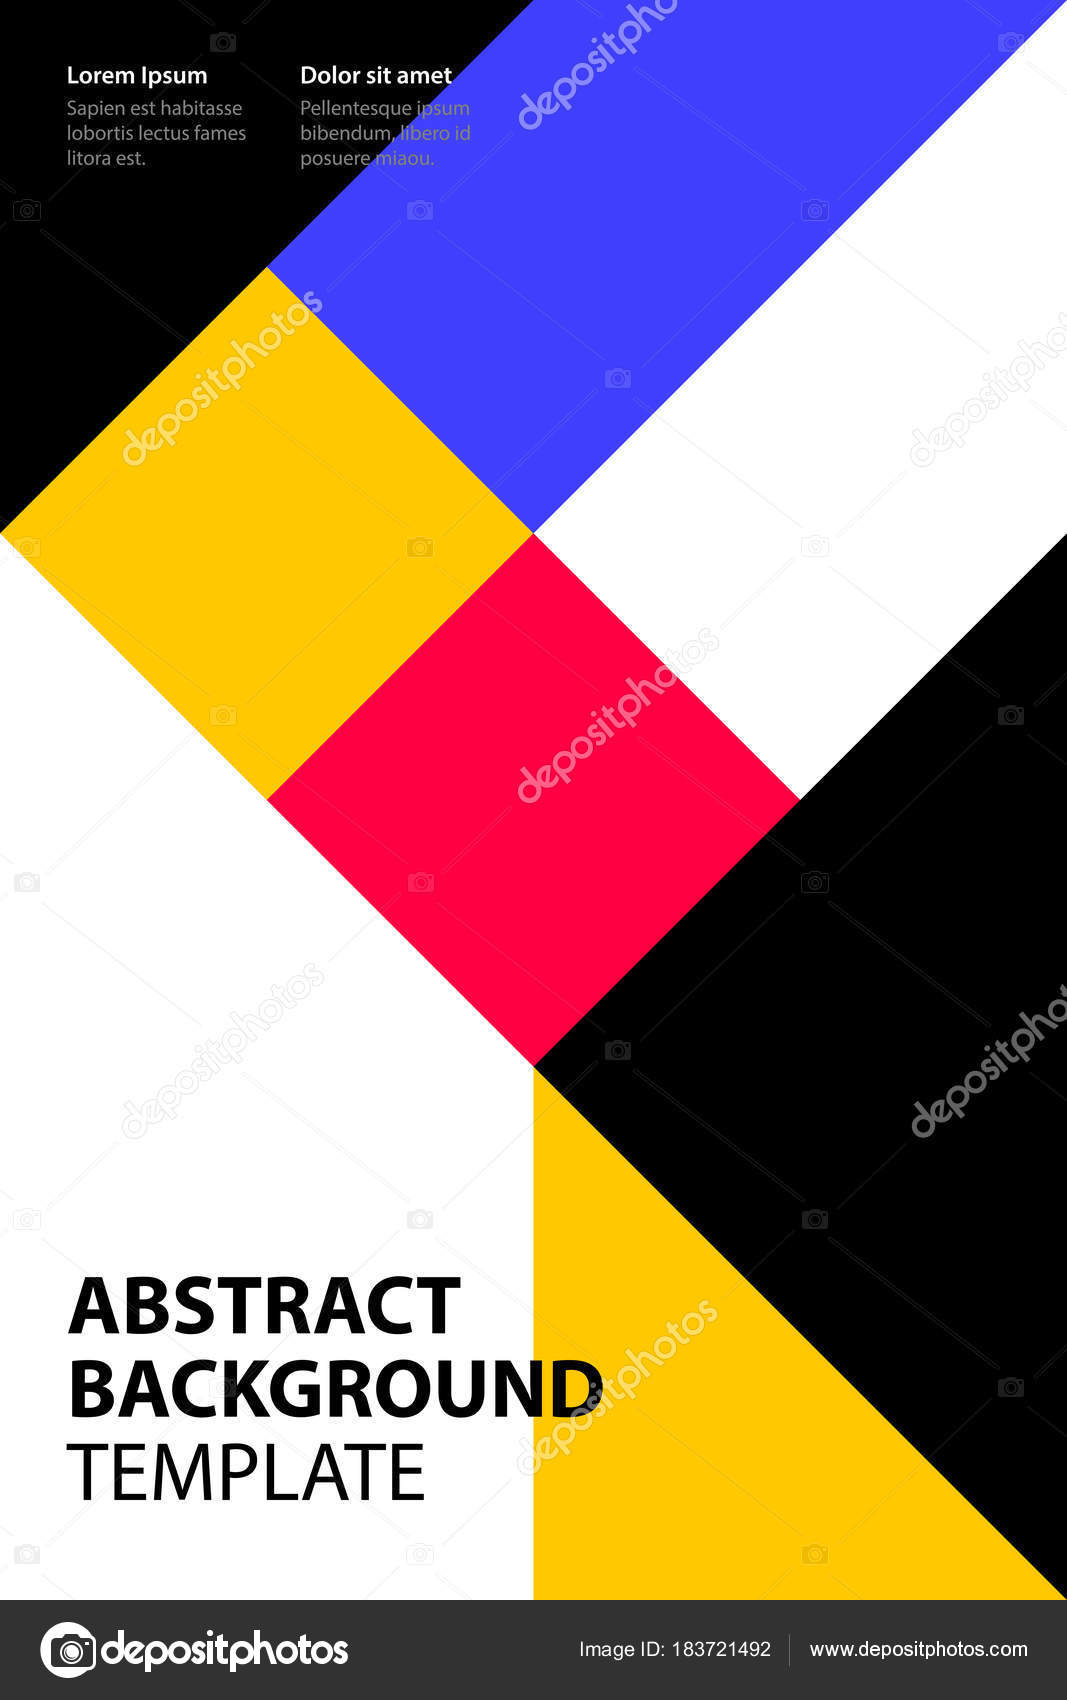 Poster Design Template | Poster Design Template With Simple Geometric Shapes In Colorful